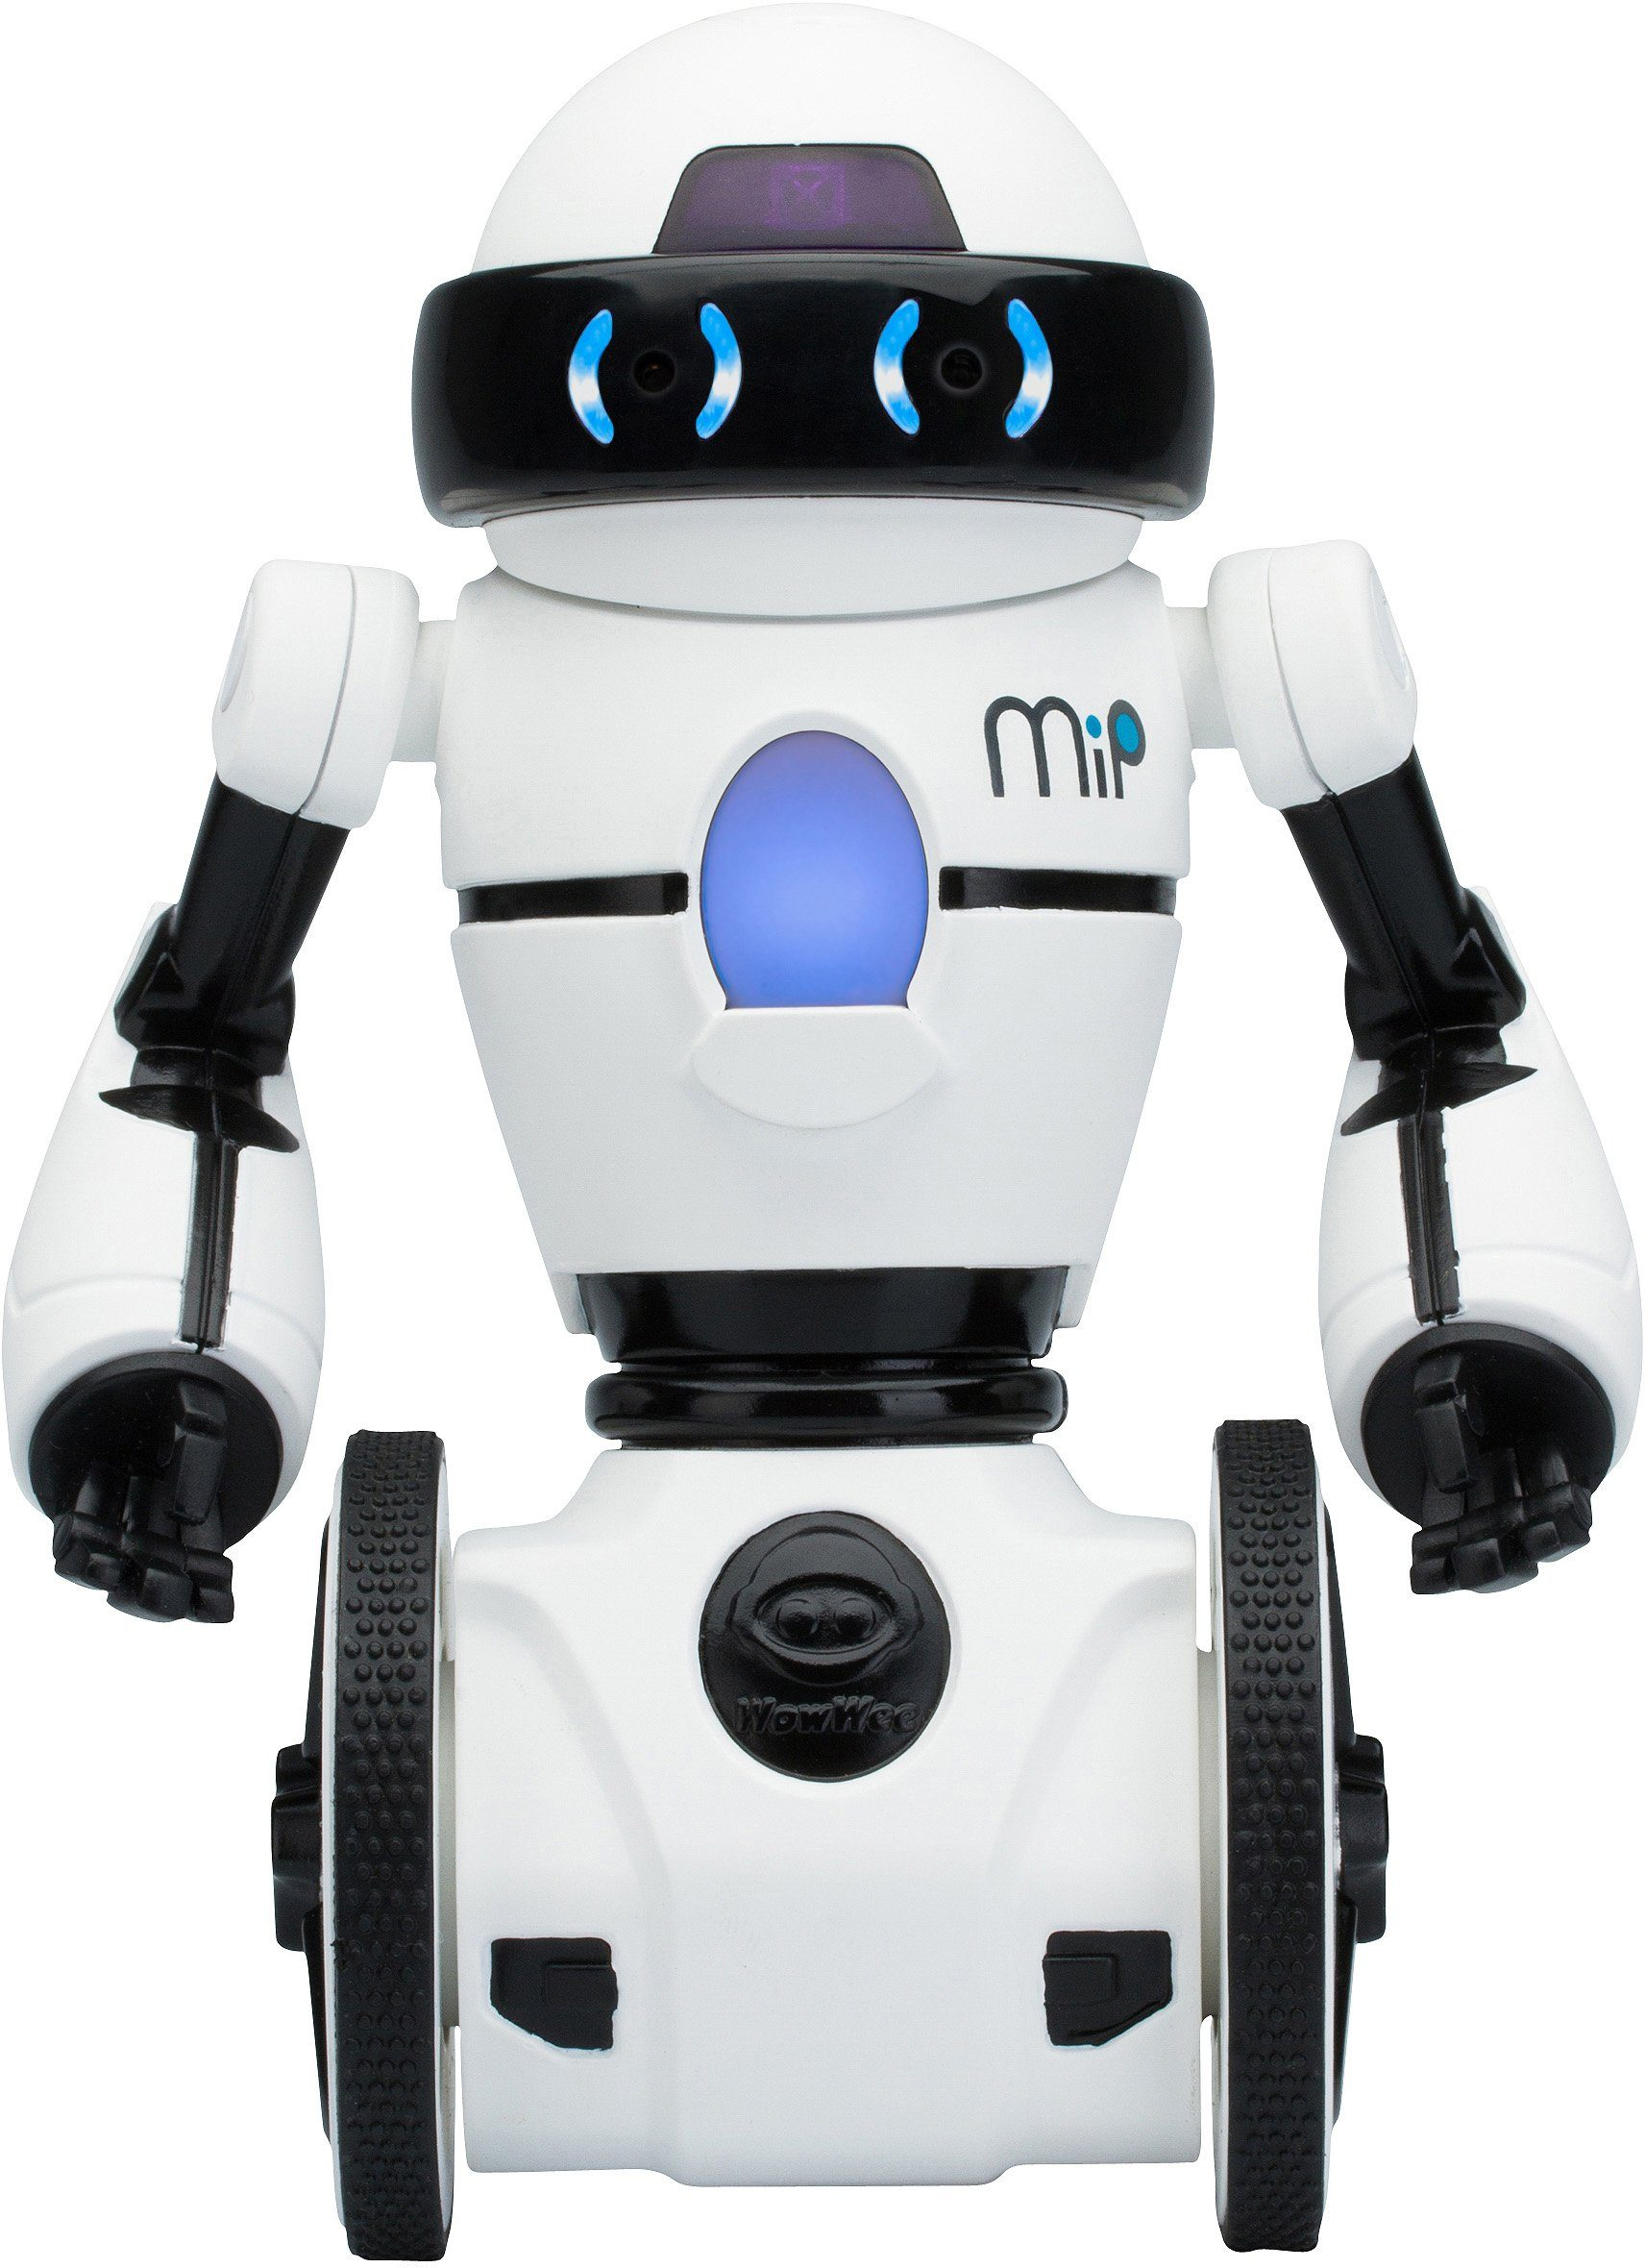 WowWee RC Roboter, »MIP weiß«